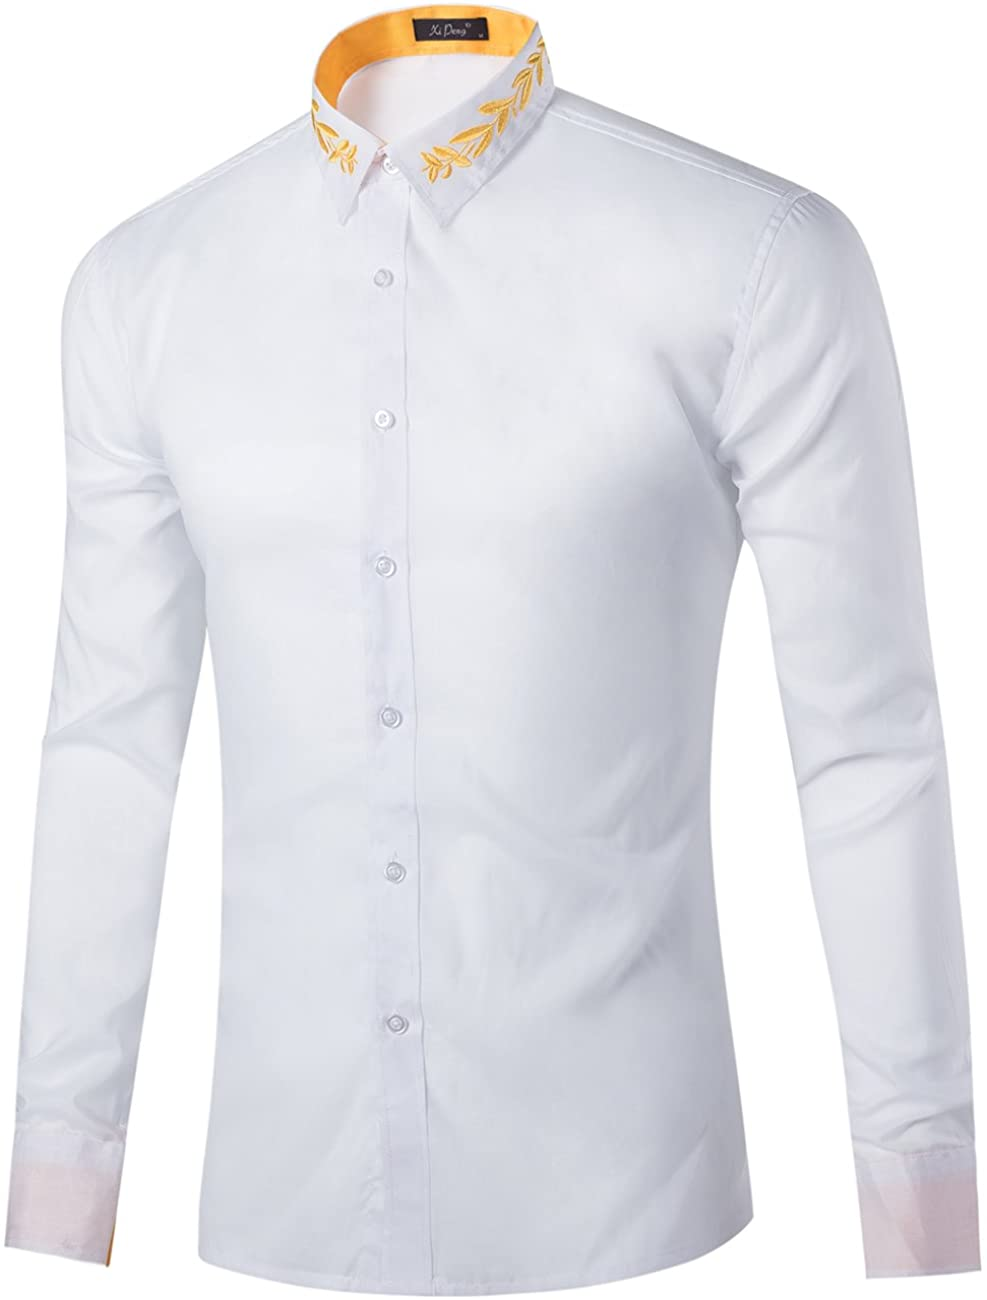 XI PENG Men's Casual Long Sleeve Floral Embroidered Button Down Collared Dress Shirts